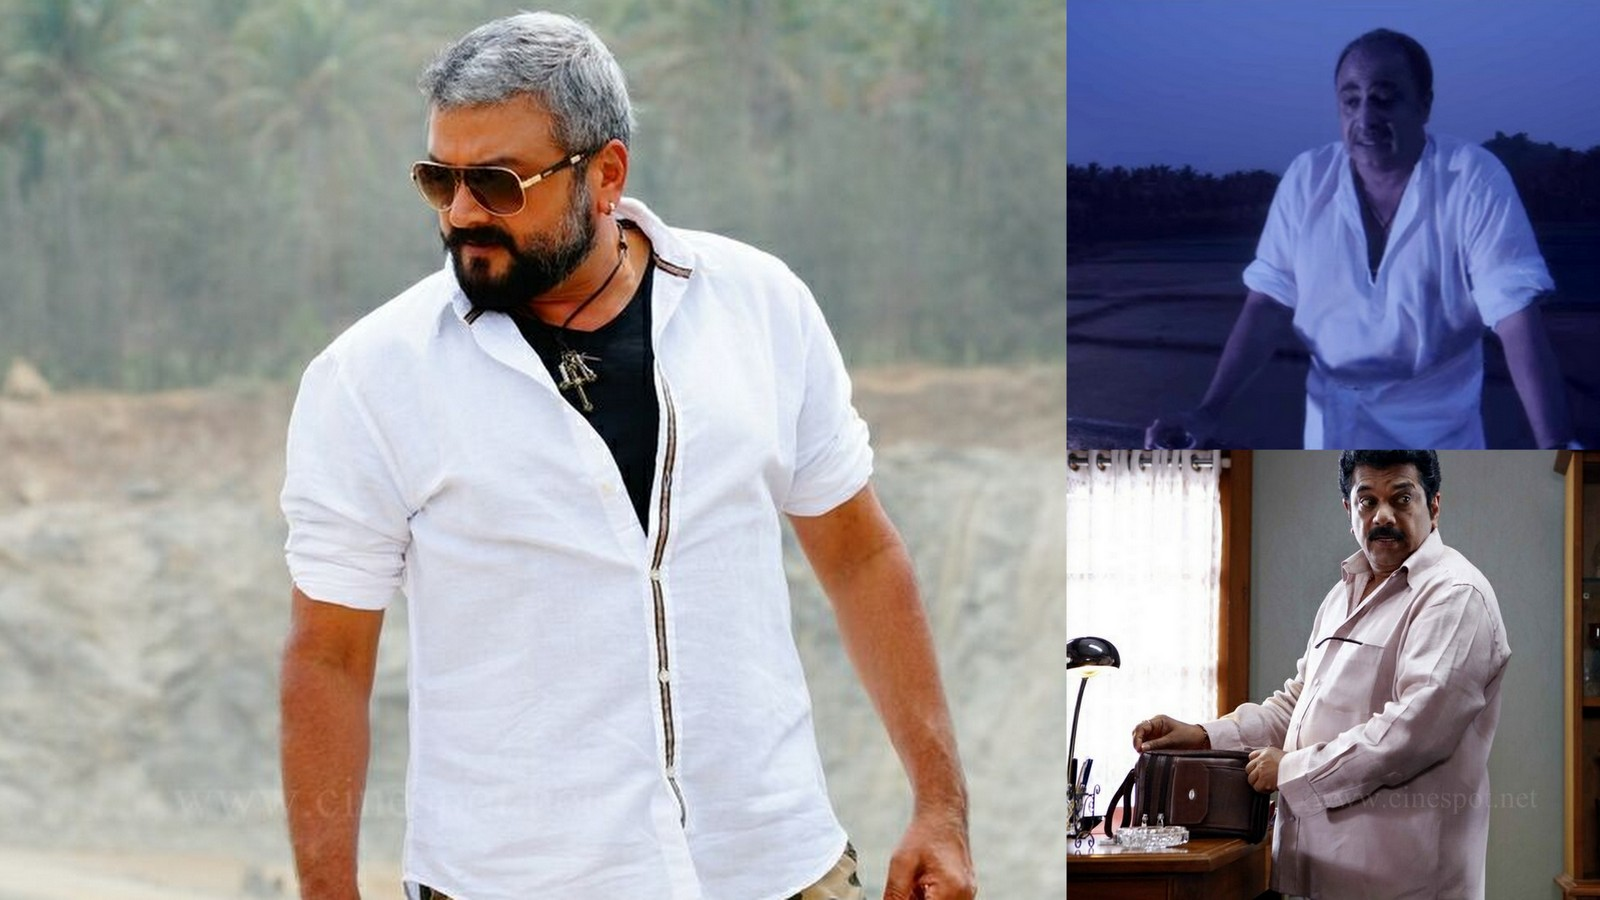 Jayaram has too many flops in Malayalam in recent years